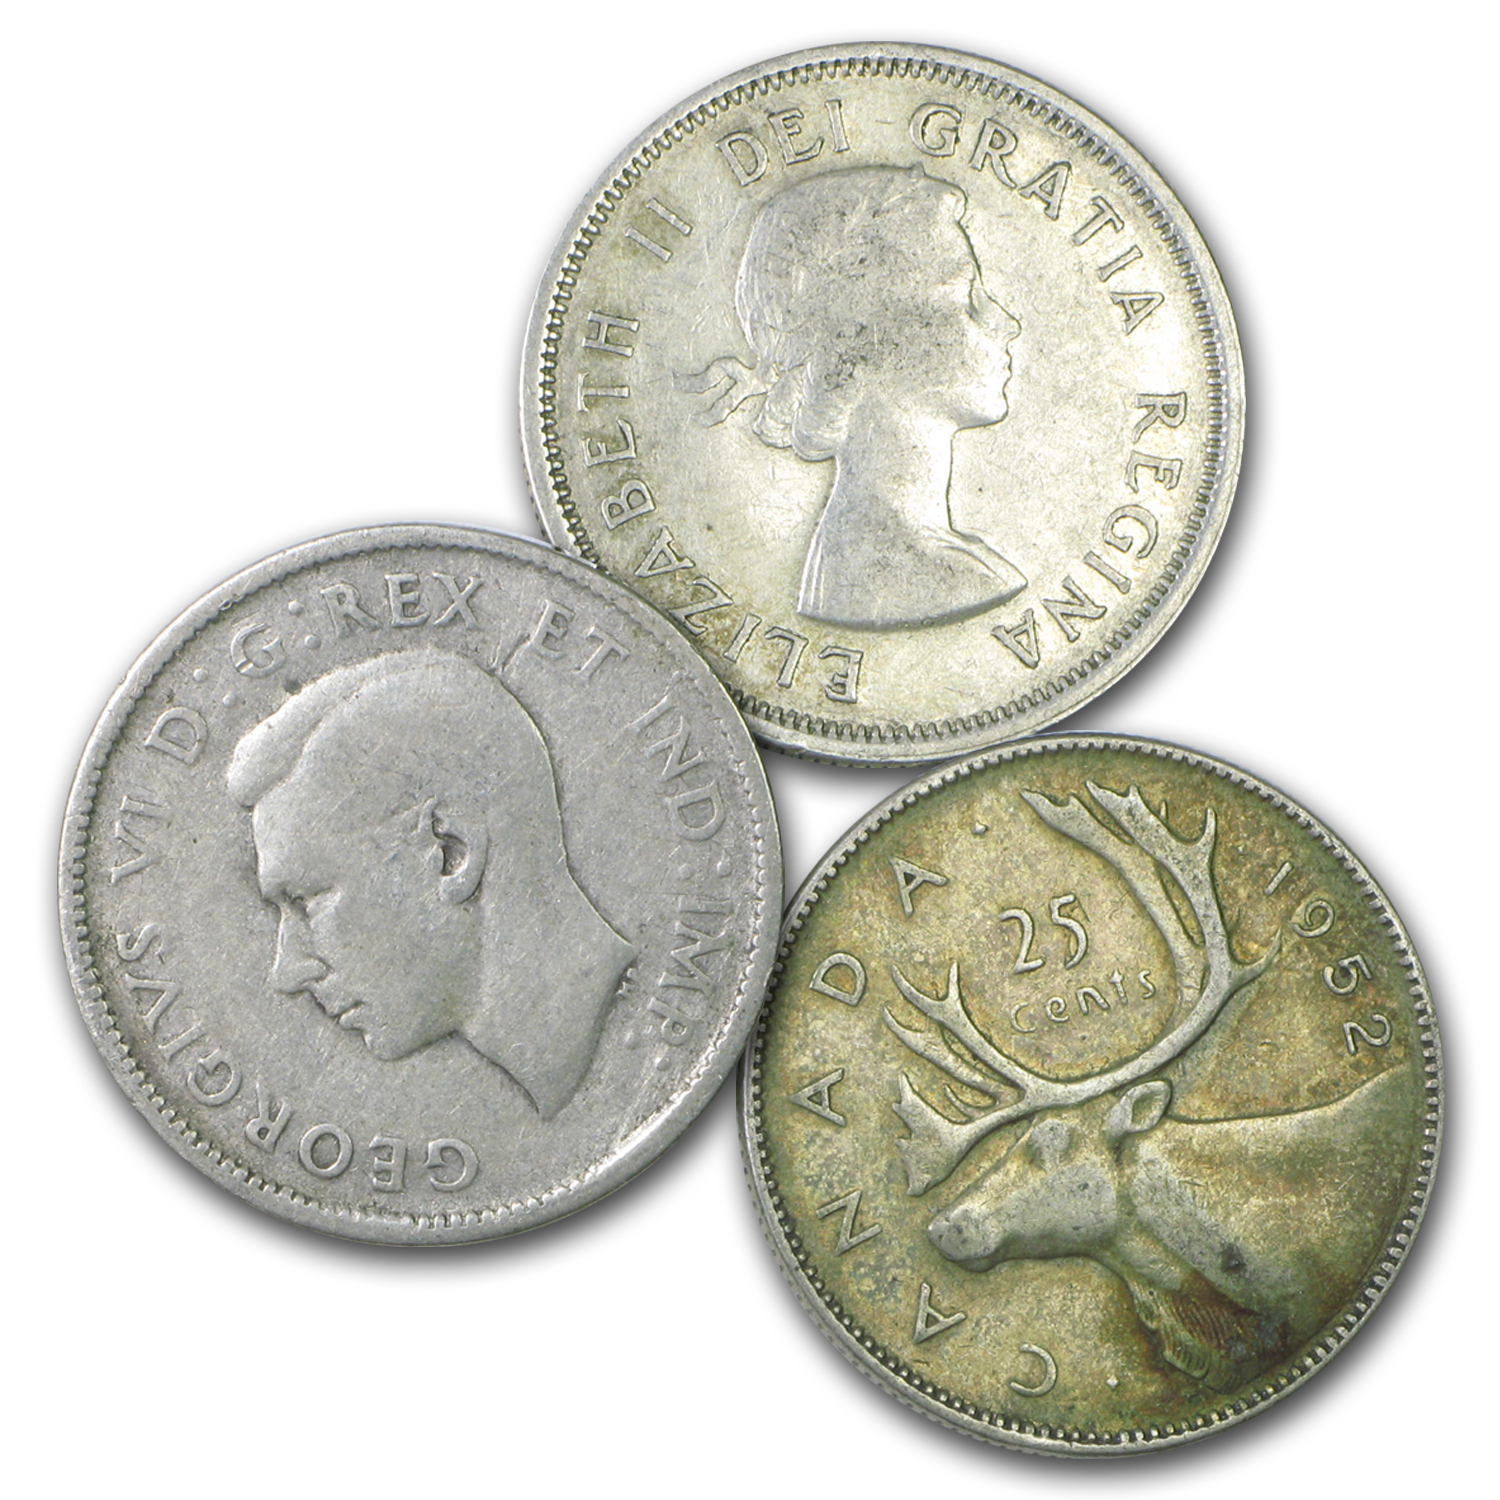 Canada 80% Silver Coins - $1 CAD Face Value Avg Circ